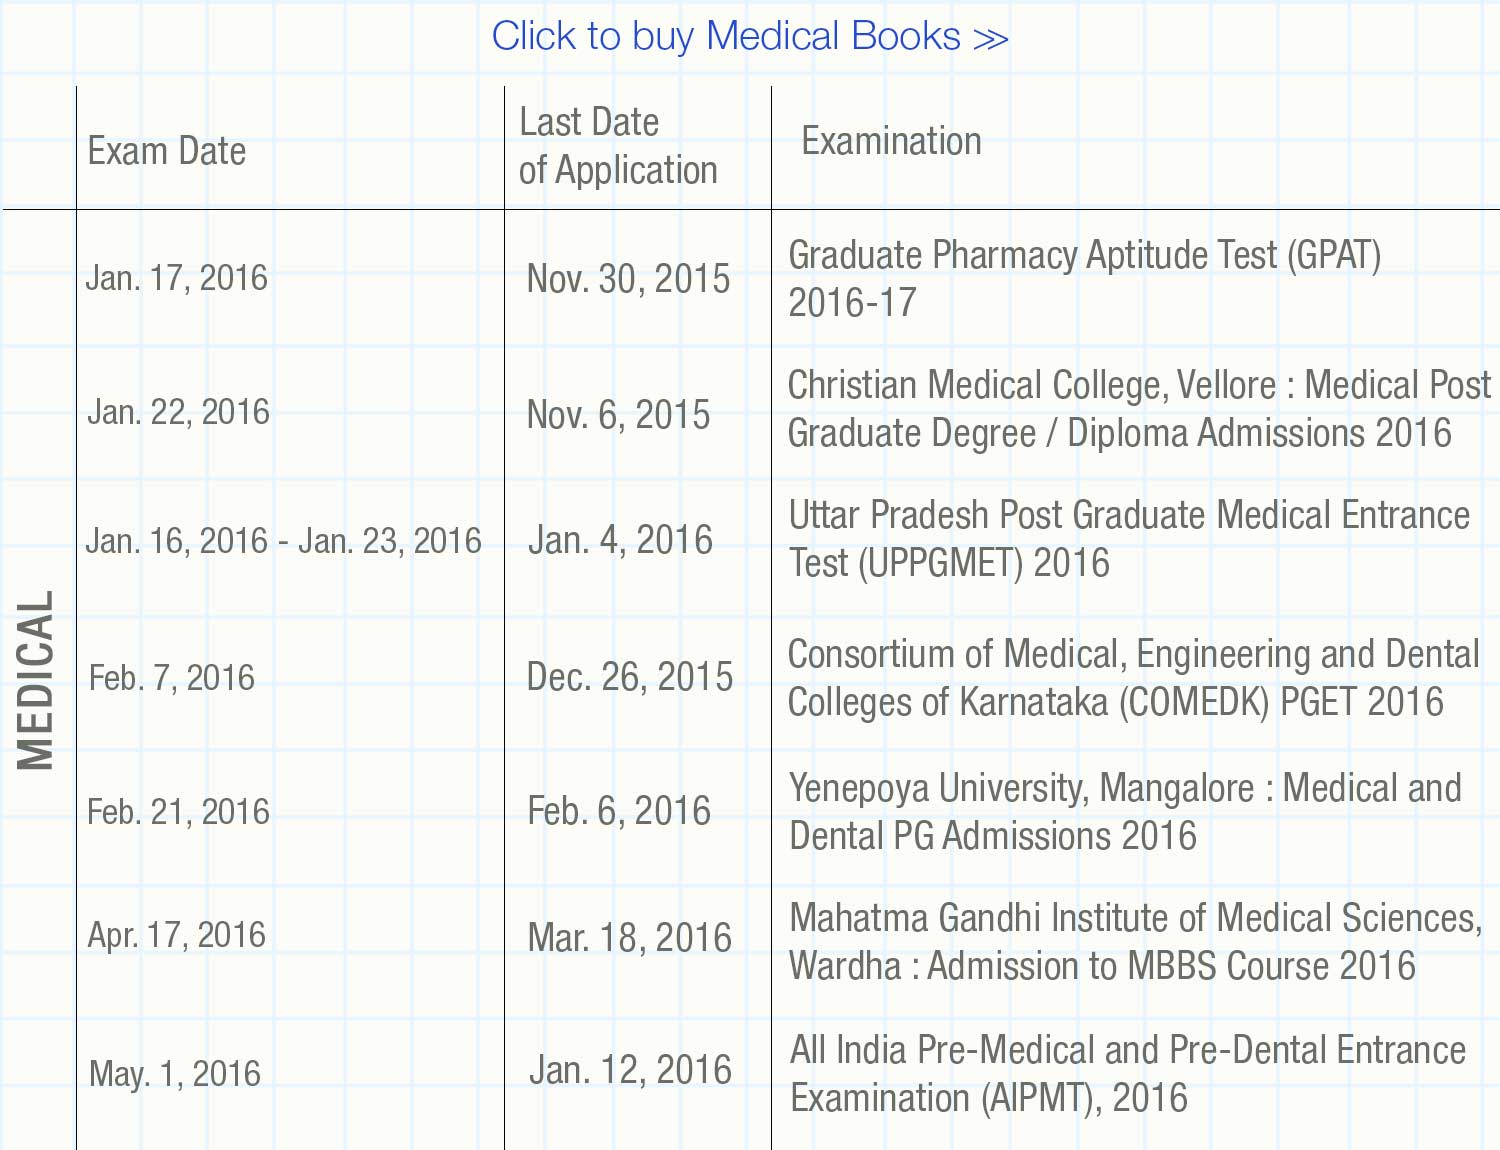 Medical Exam Timetable